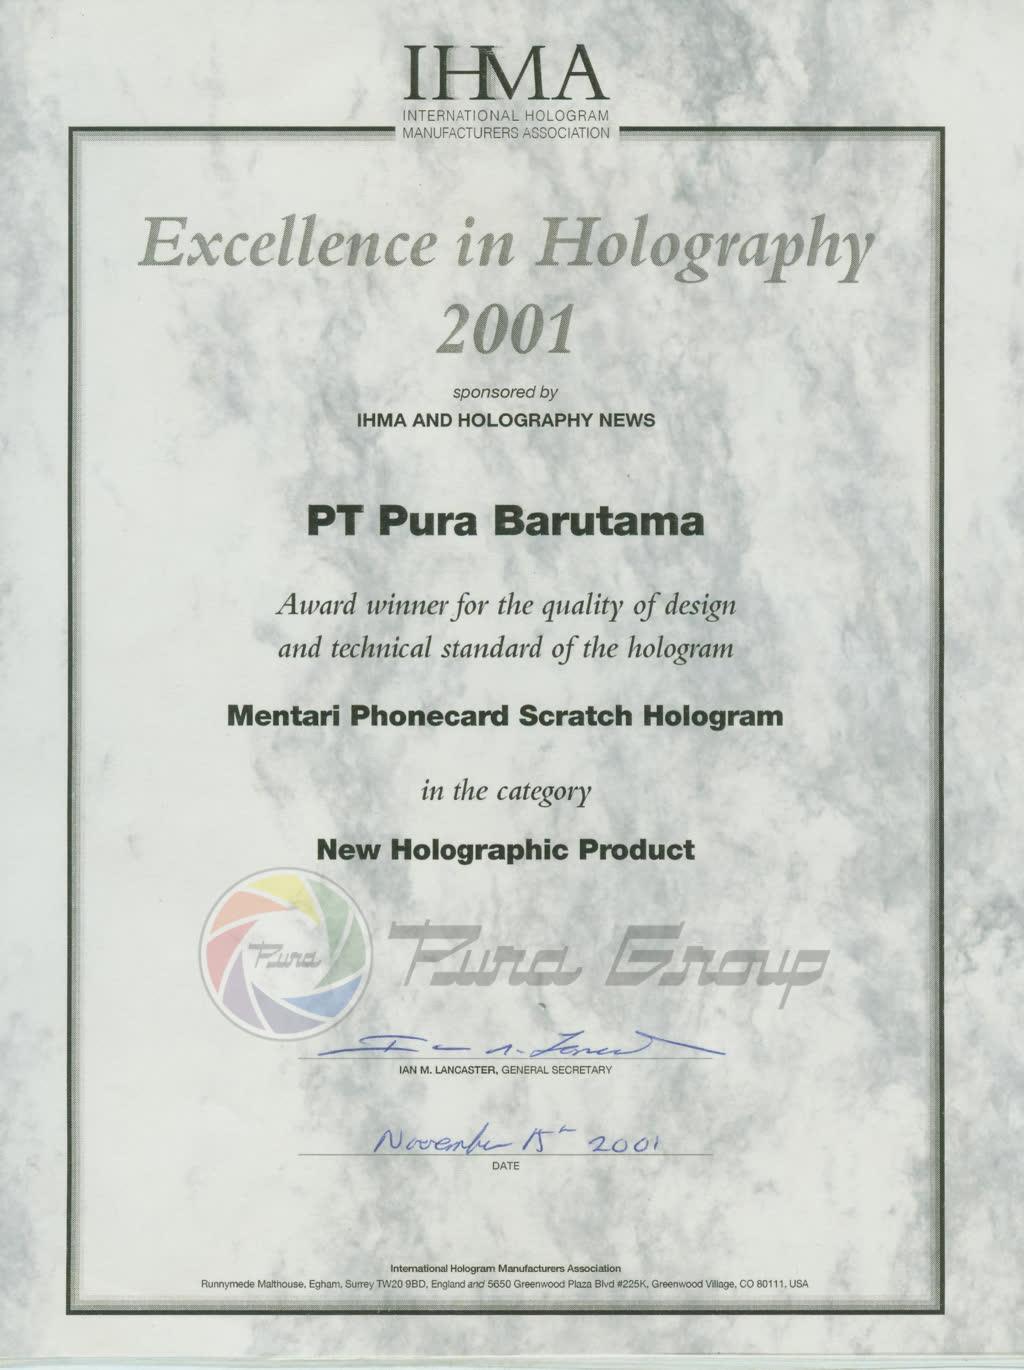 IHMA AWARD 2001FOR NEW HOLOGRAPHIC PRODUCT